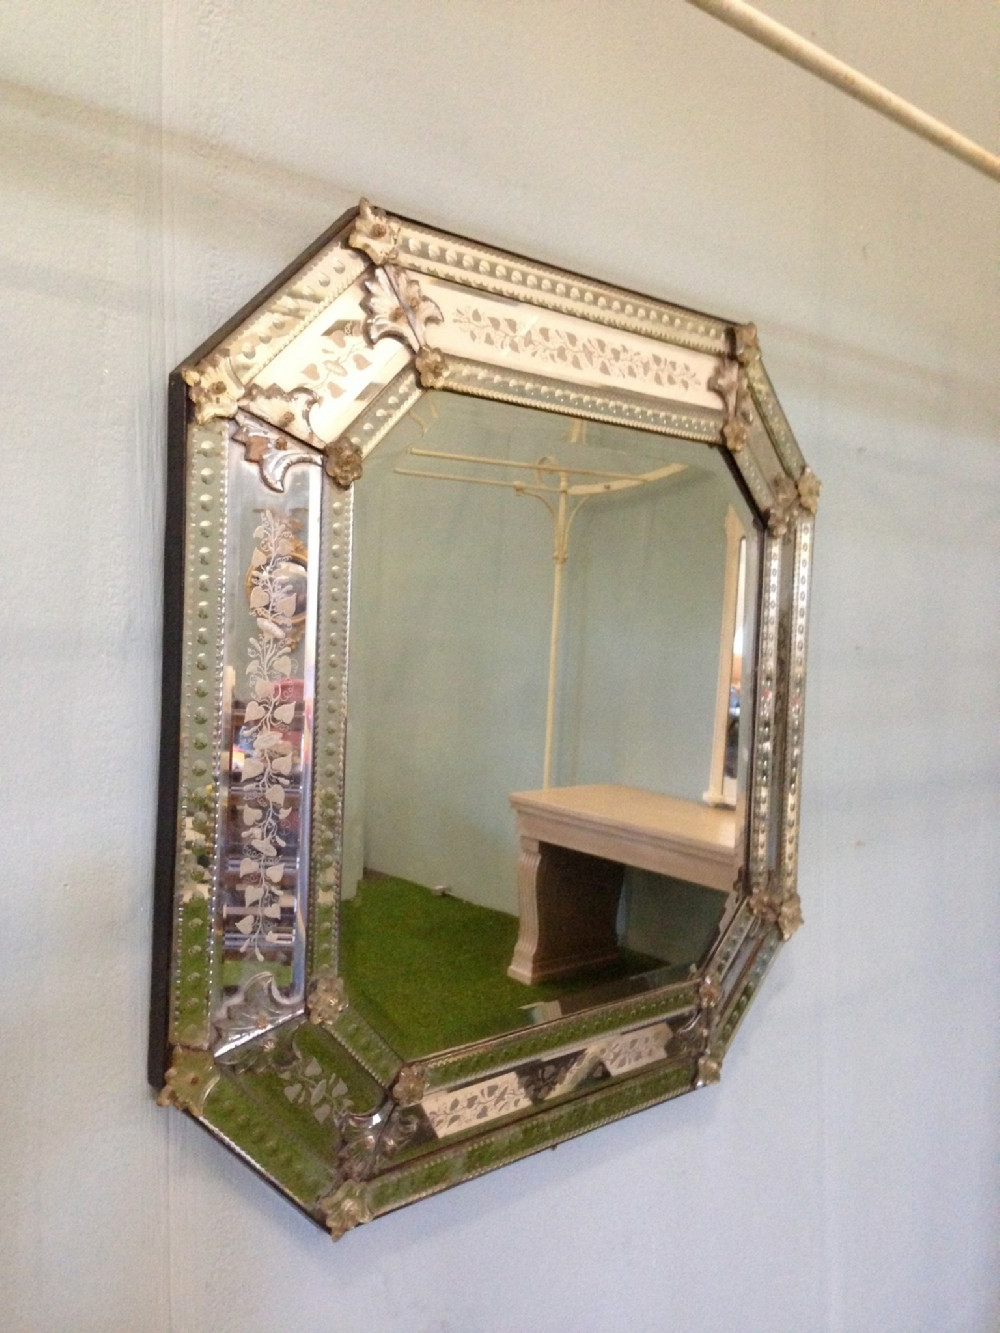 Octagon Wall Mirrors With Regard To Popular Large Octagonal Venetian Wall Mirror With Decorative Detailed (View 12 of 20)